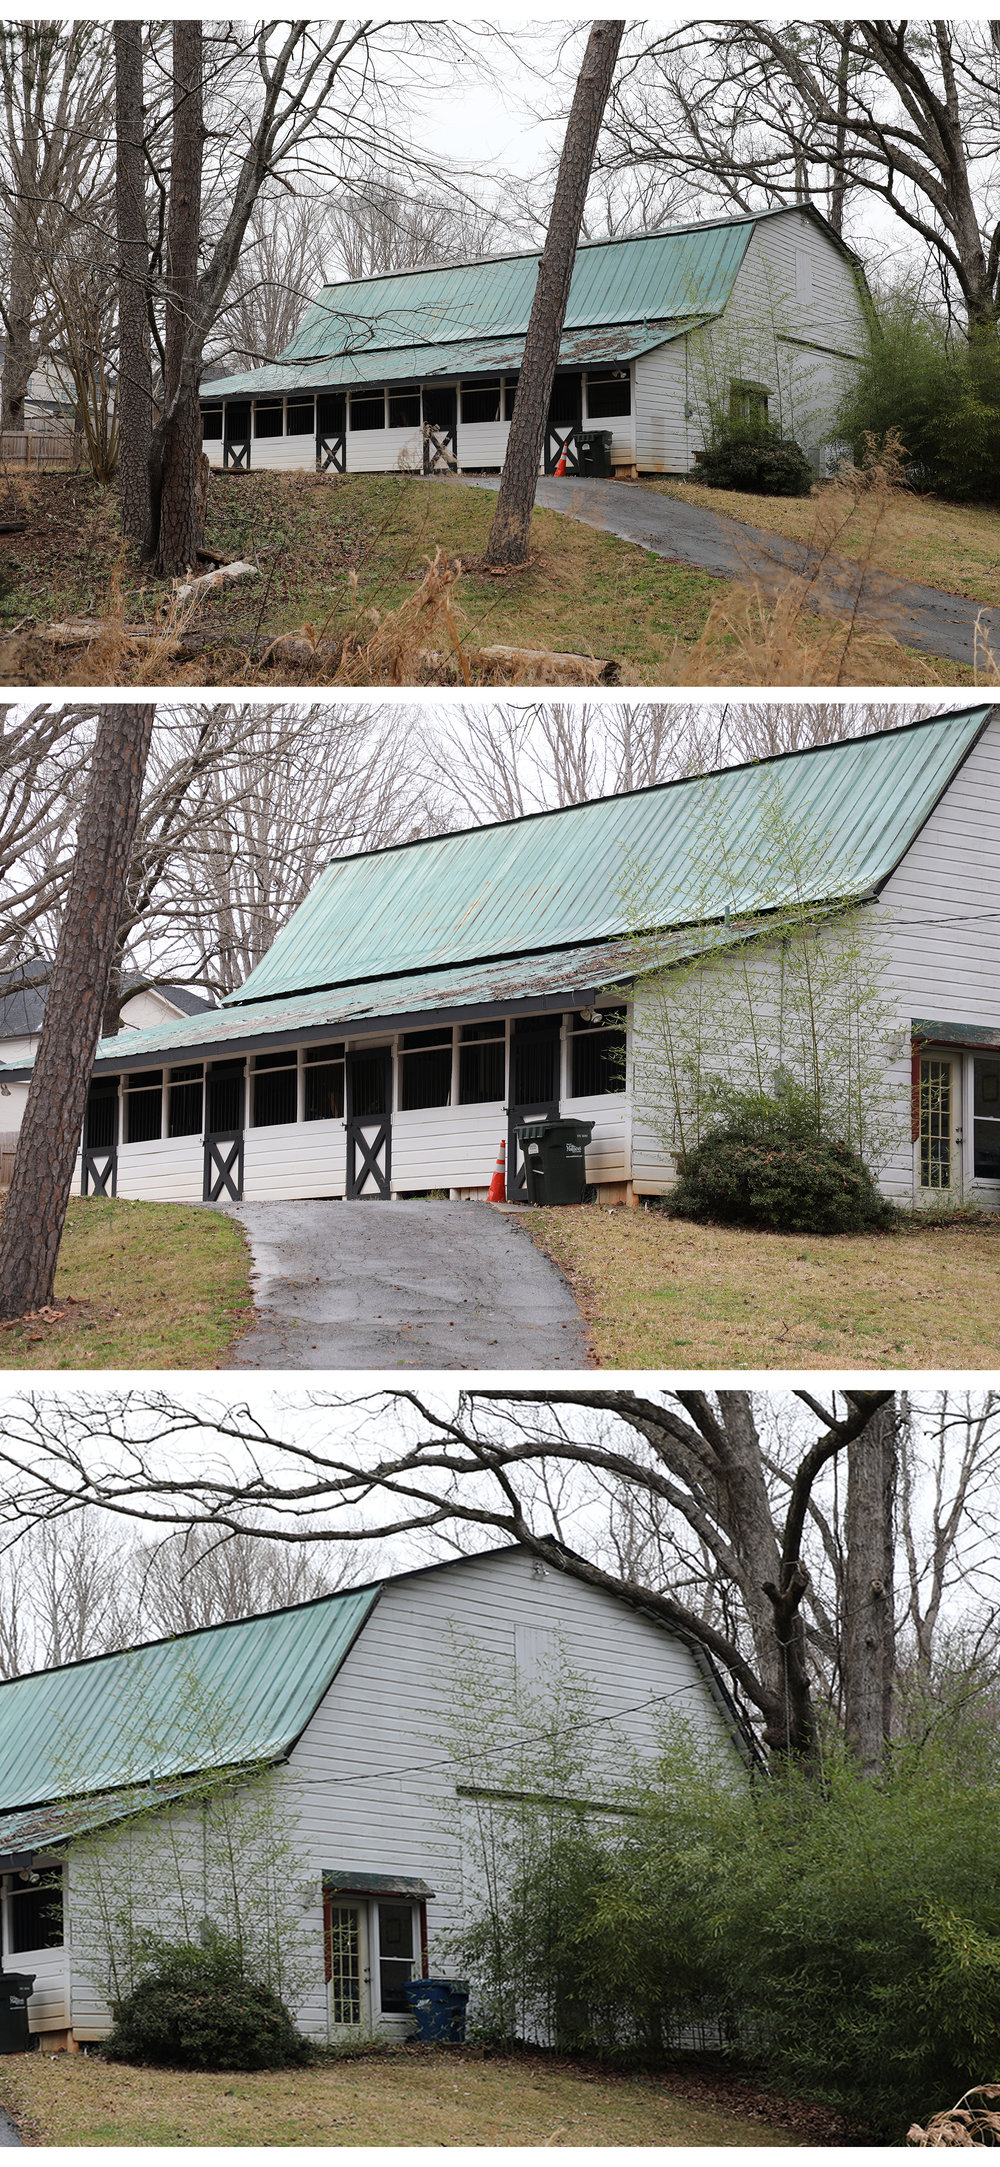 Hickory Hill Barn: There's little on public record about this structure, but probably was built around 1960. -